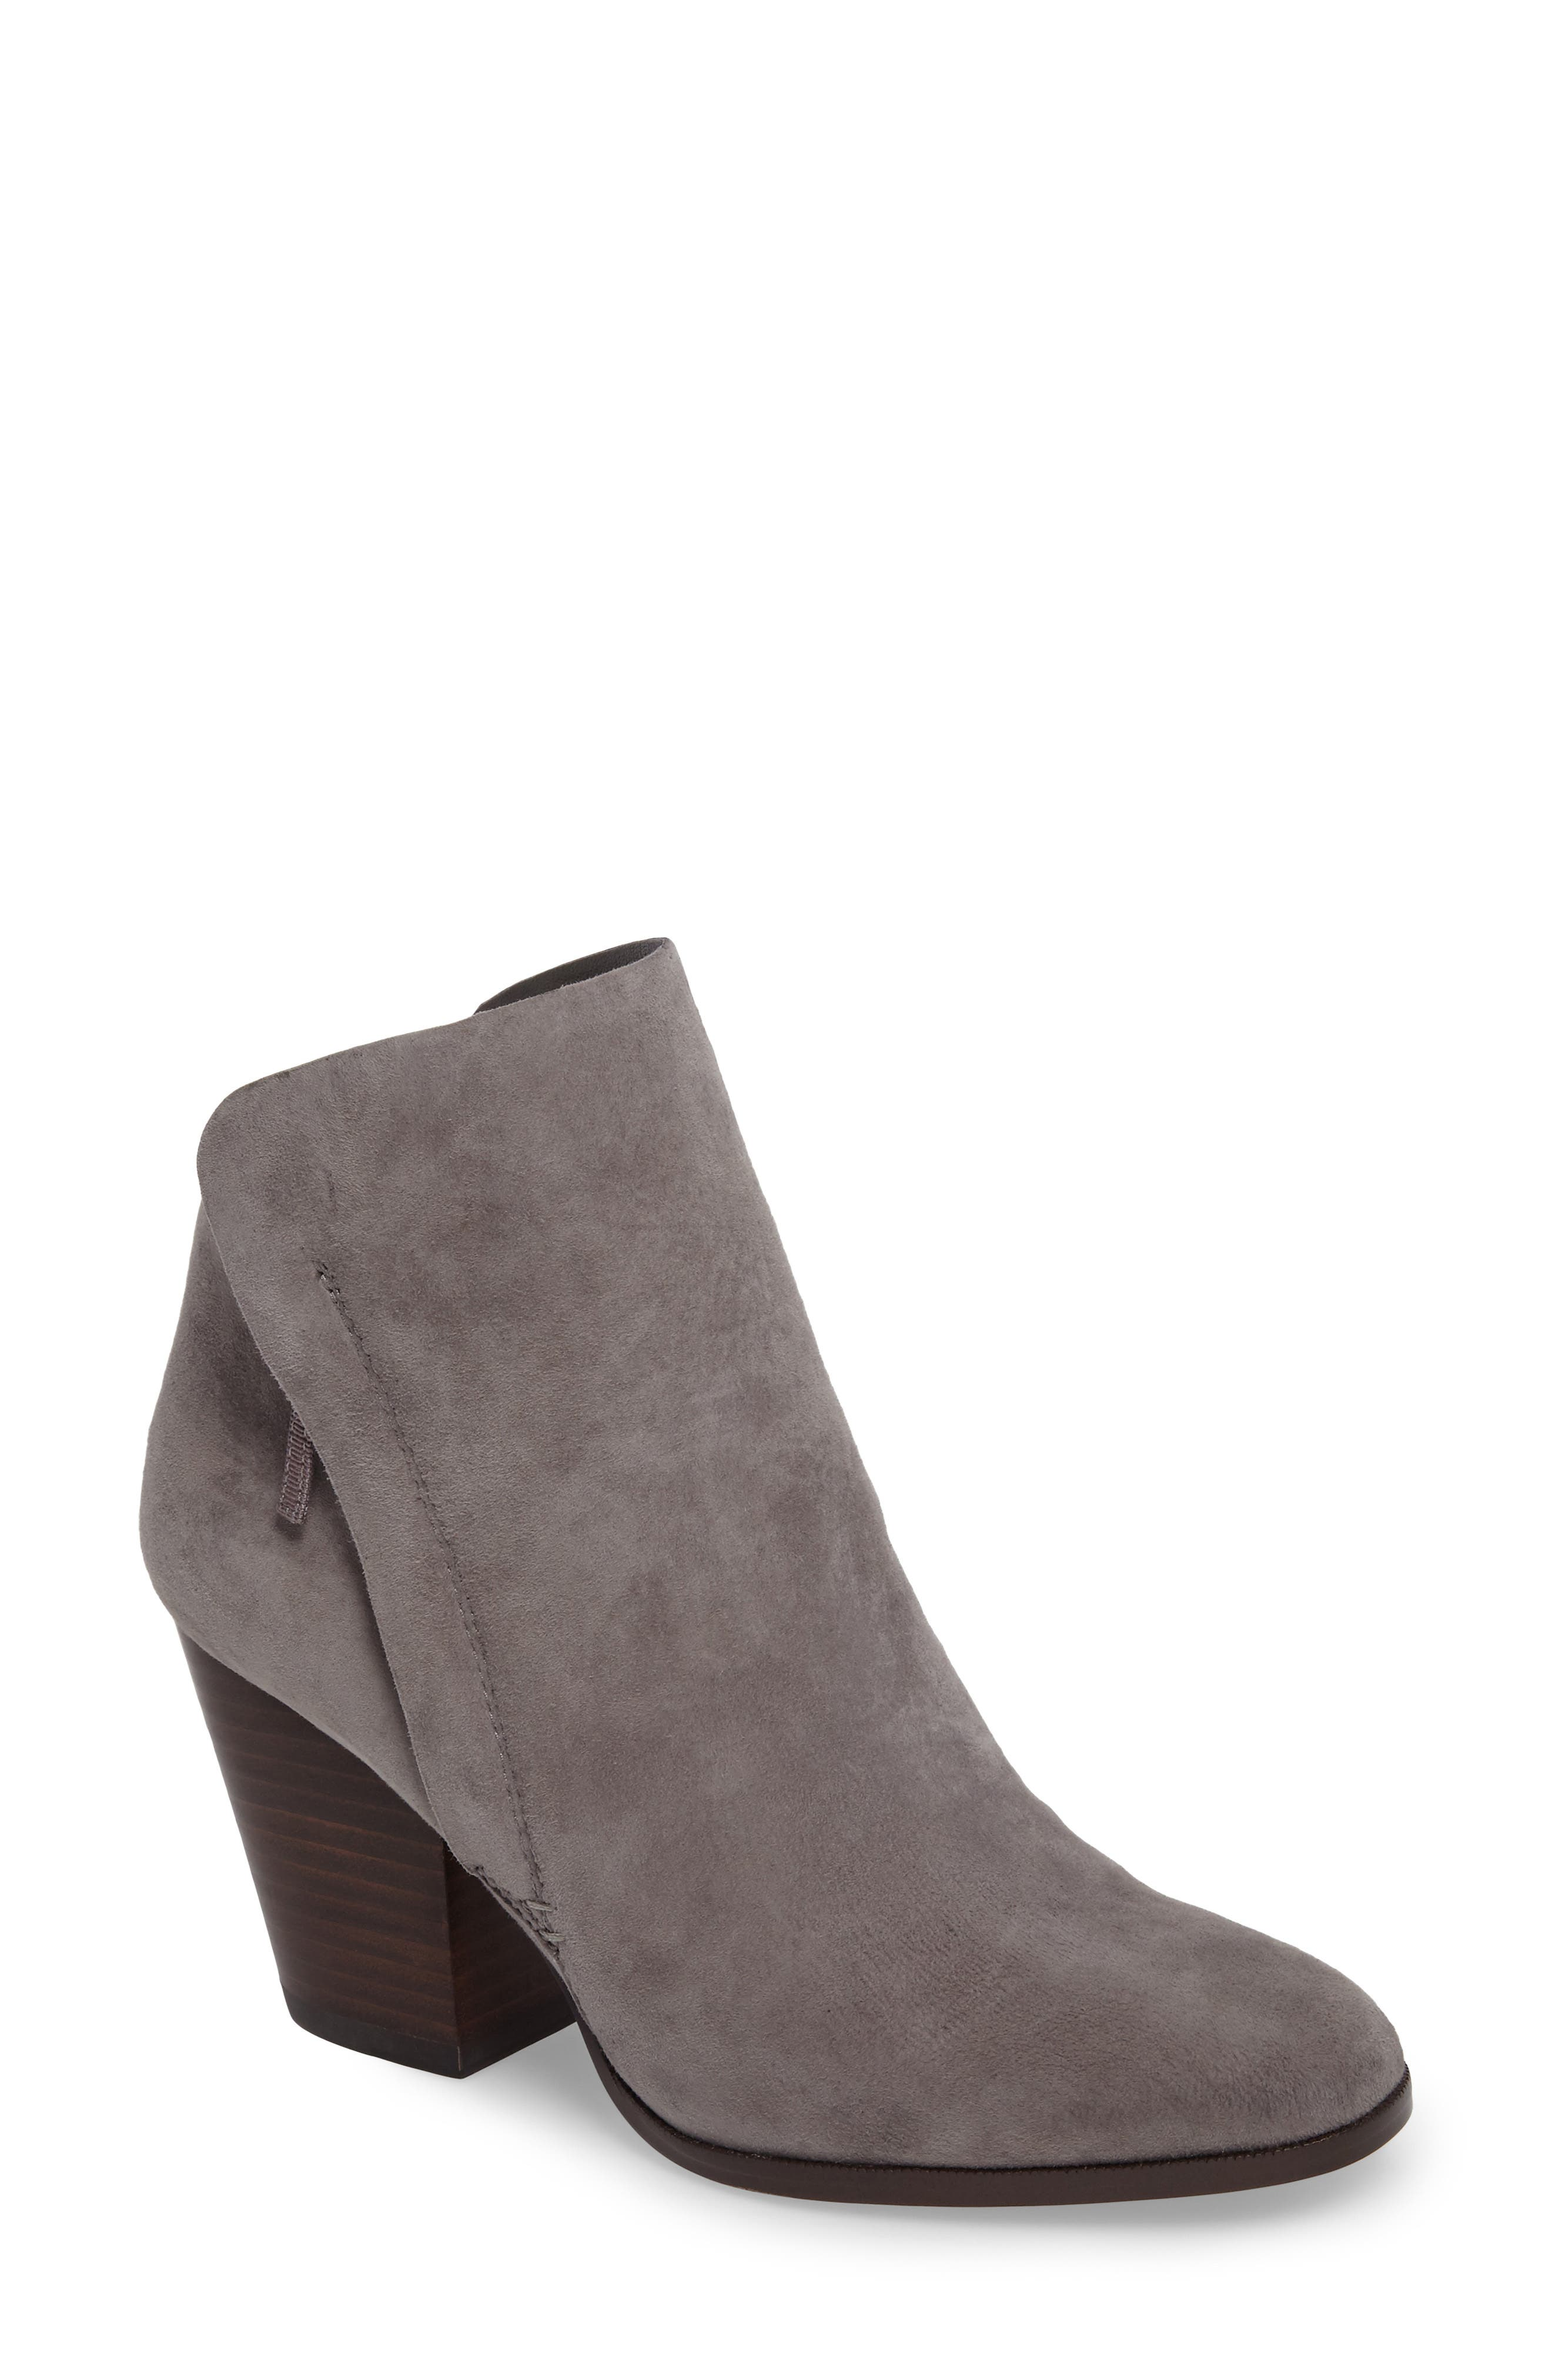 Taila Angle Zip Bootie,                         Main,                         color, Iron Suede